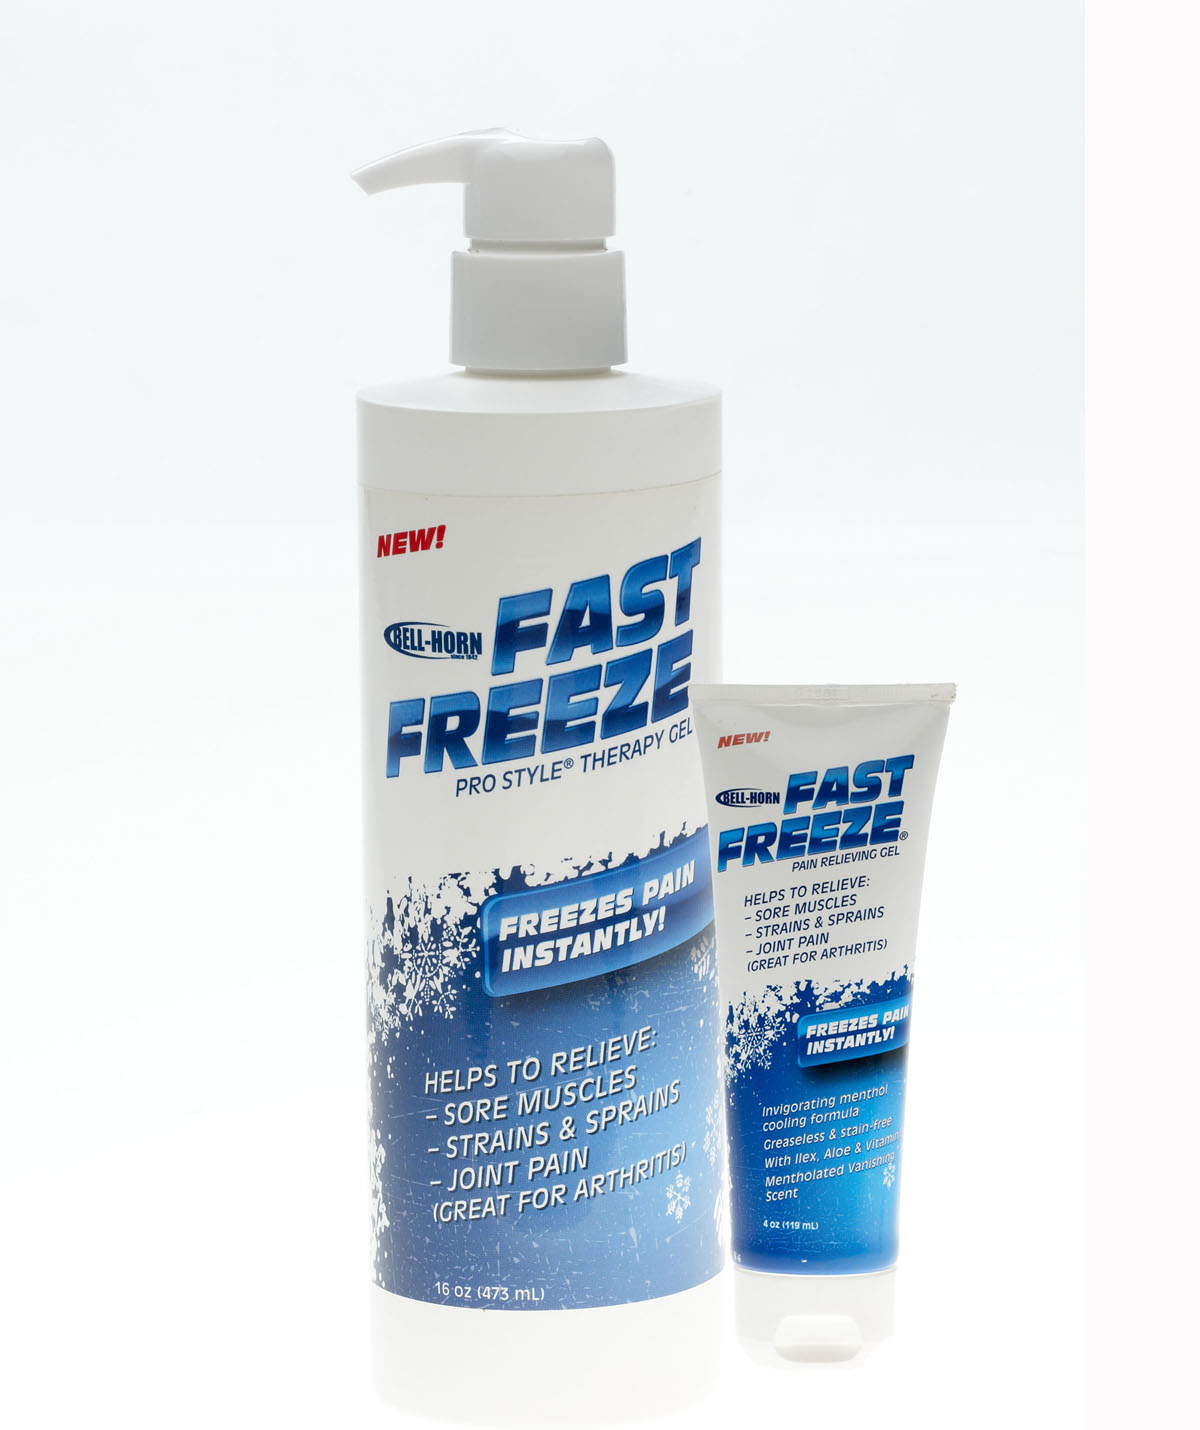 Fast Freeze Cold Therapy Pain Relief, Gel 16 Oz Bottle, Each